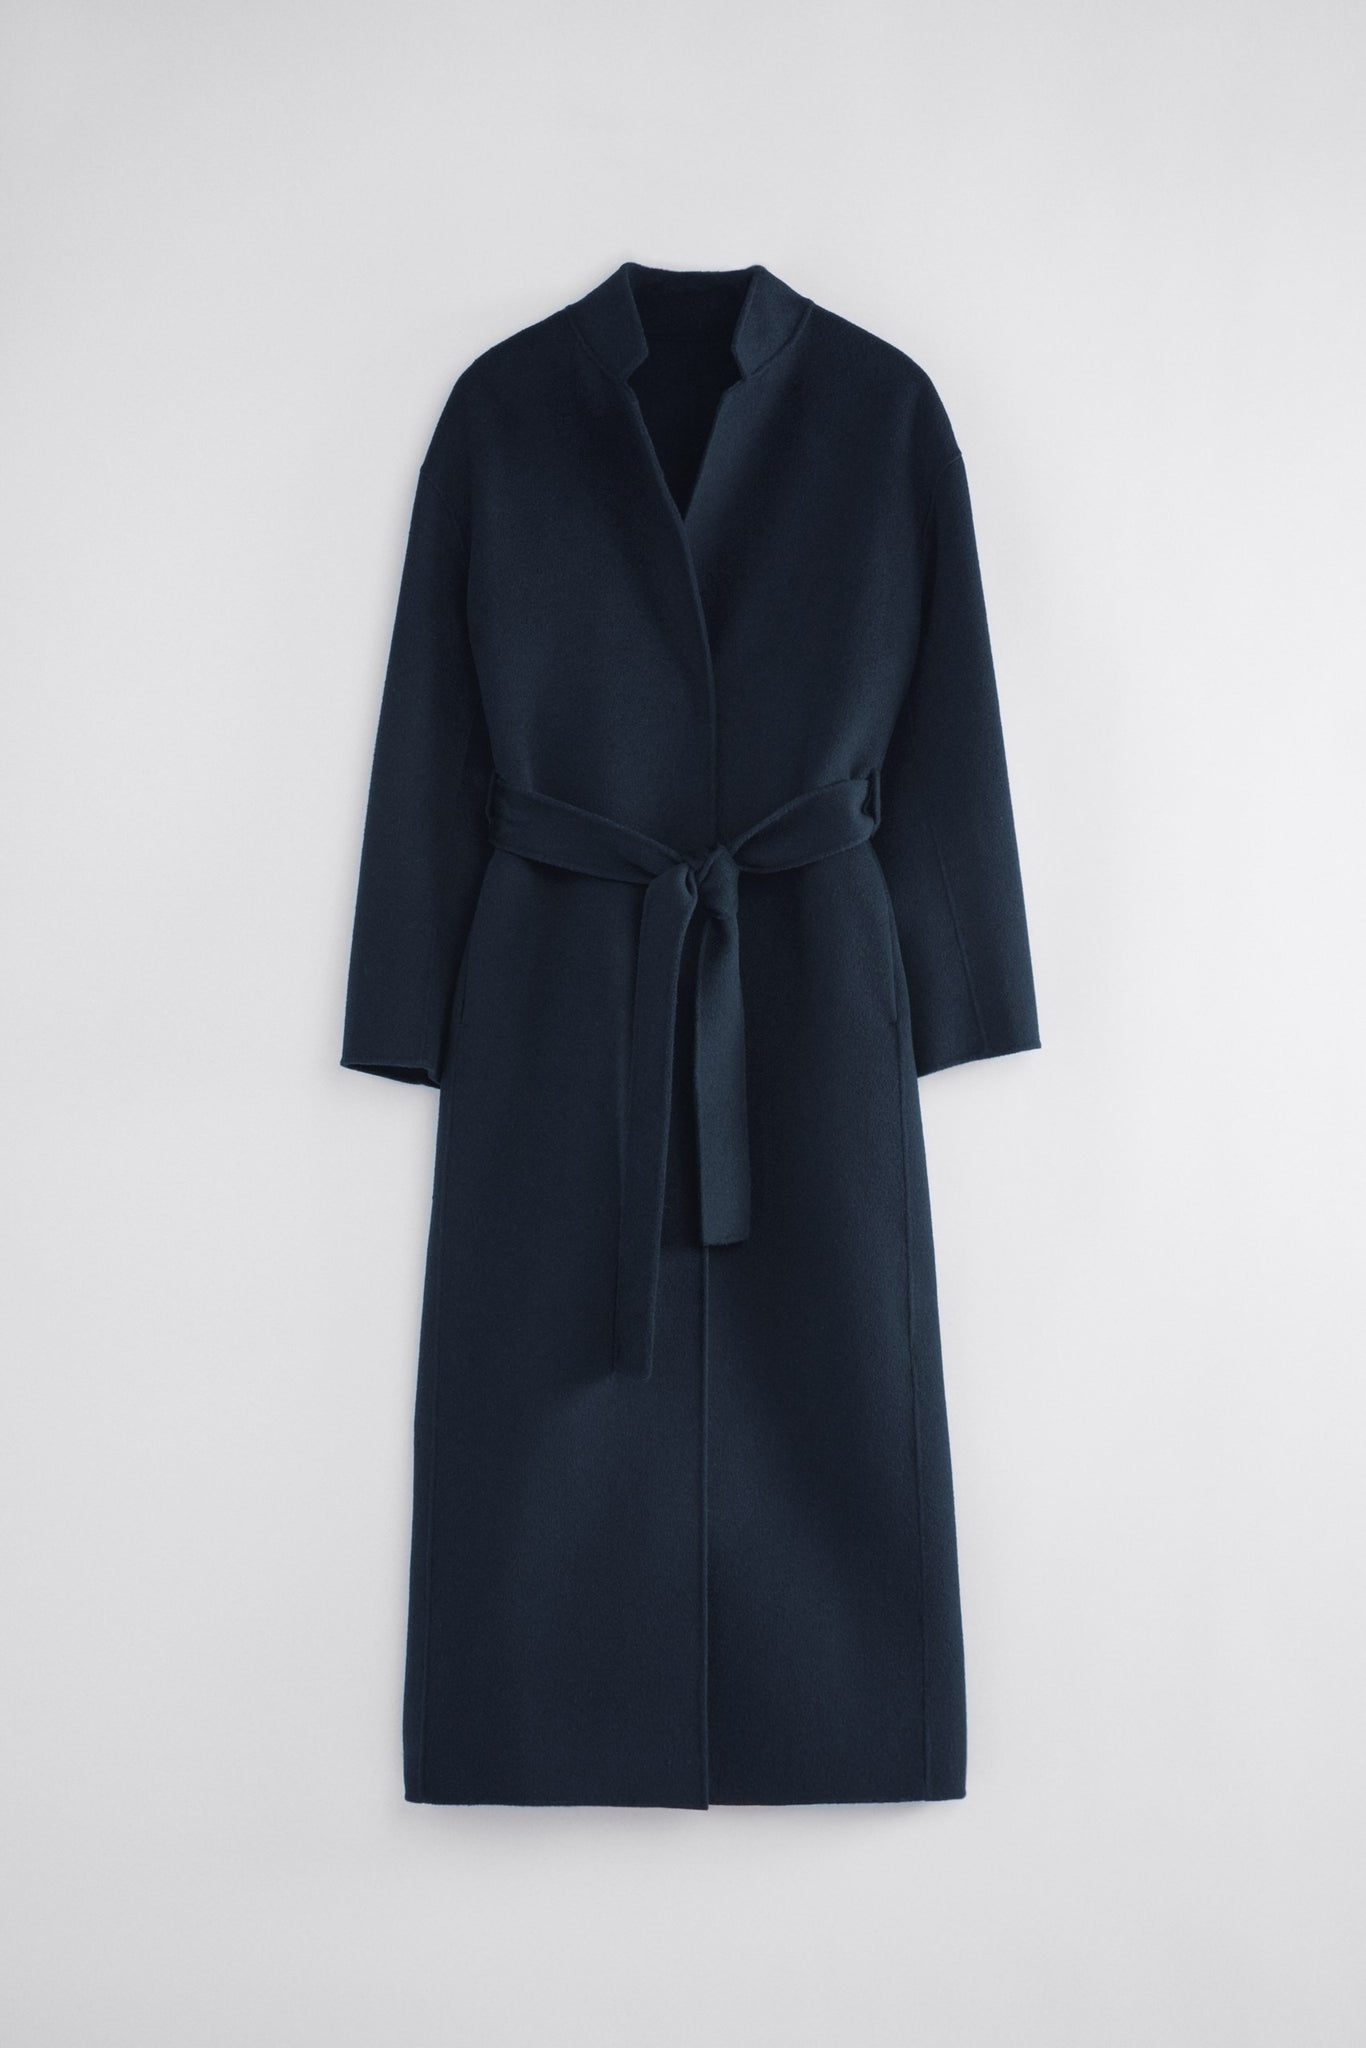 ALEXA COAT IN NAVY BY FILIPPA K